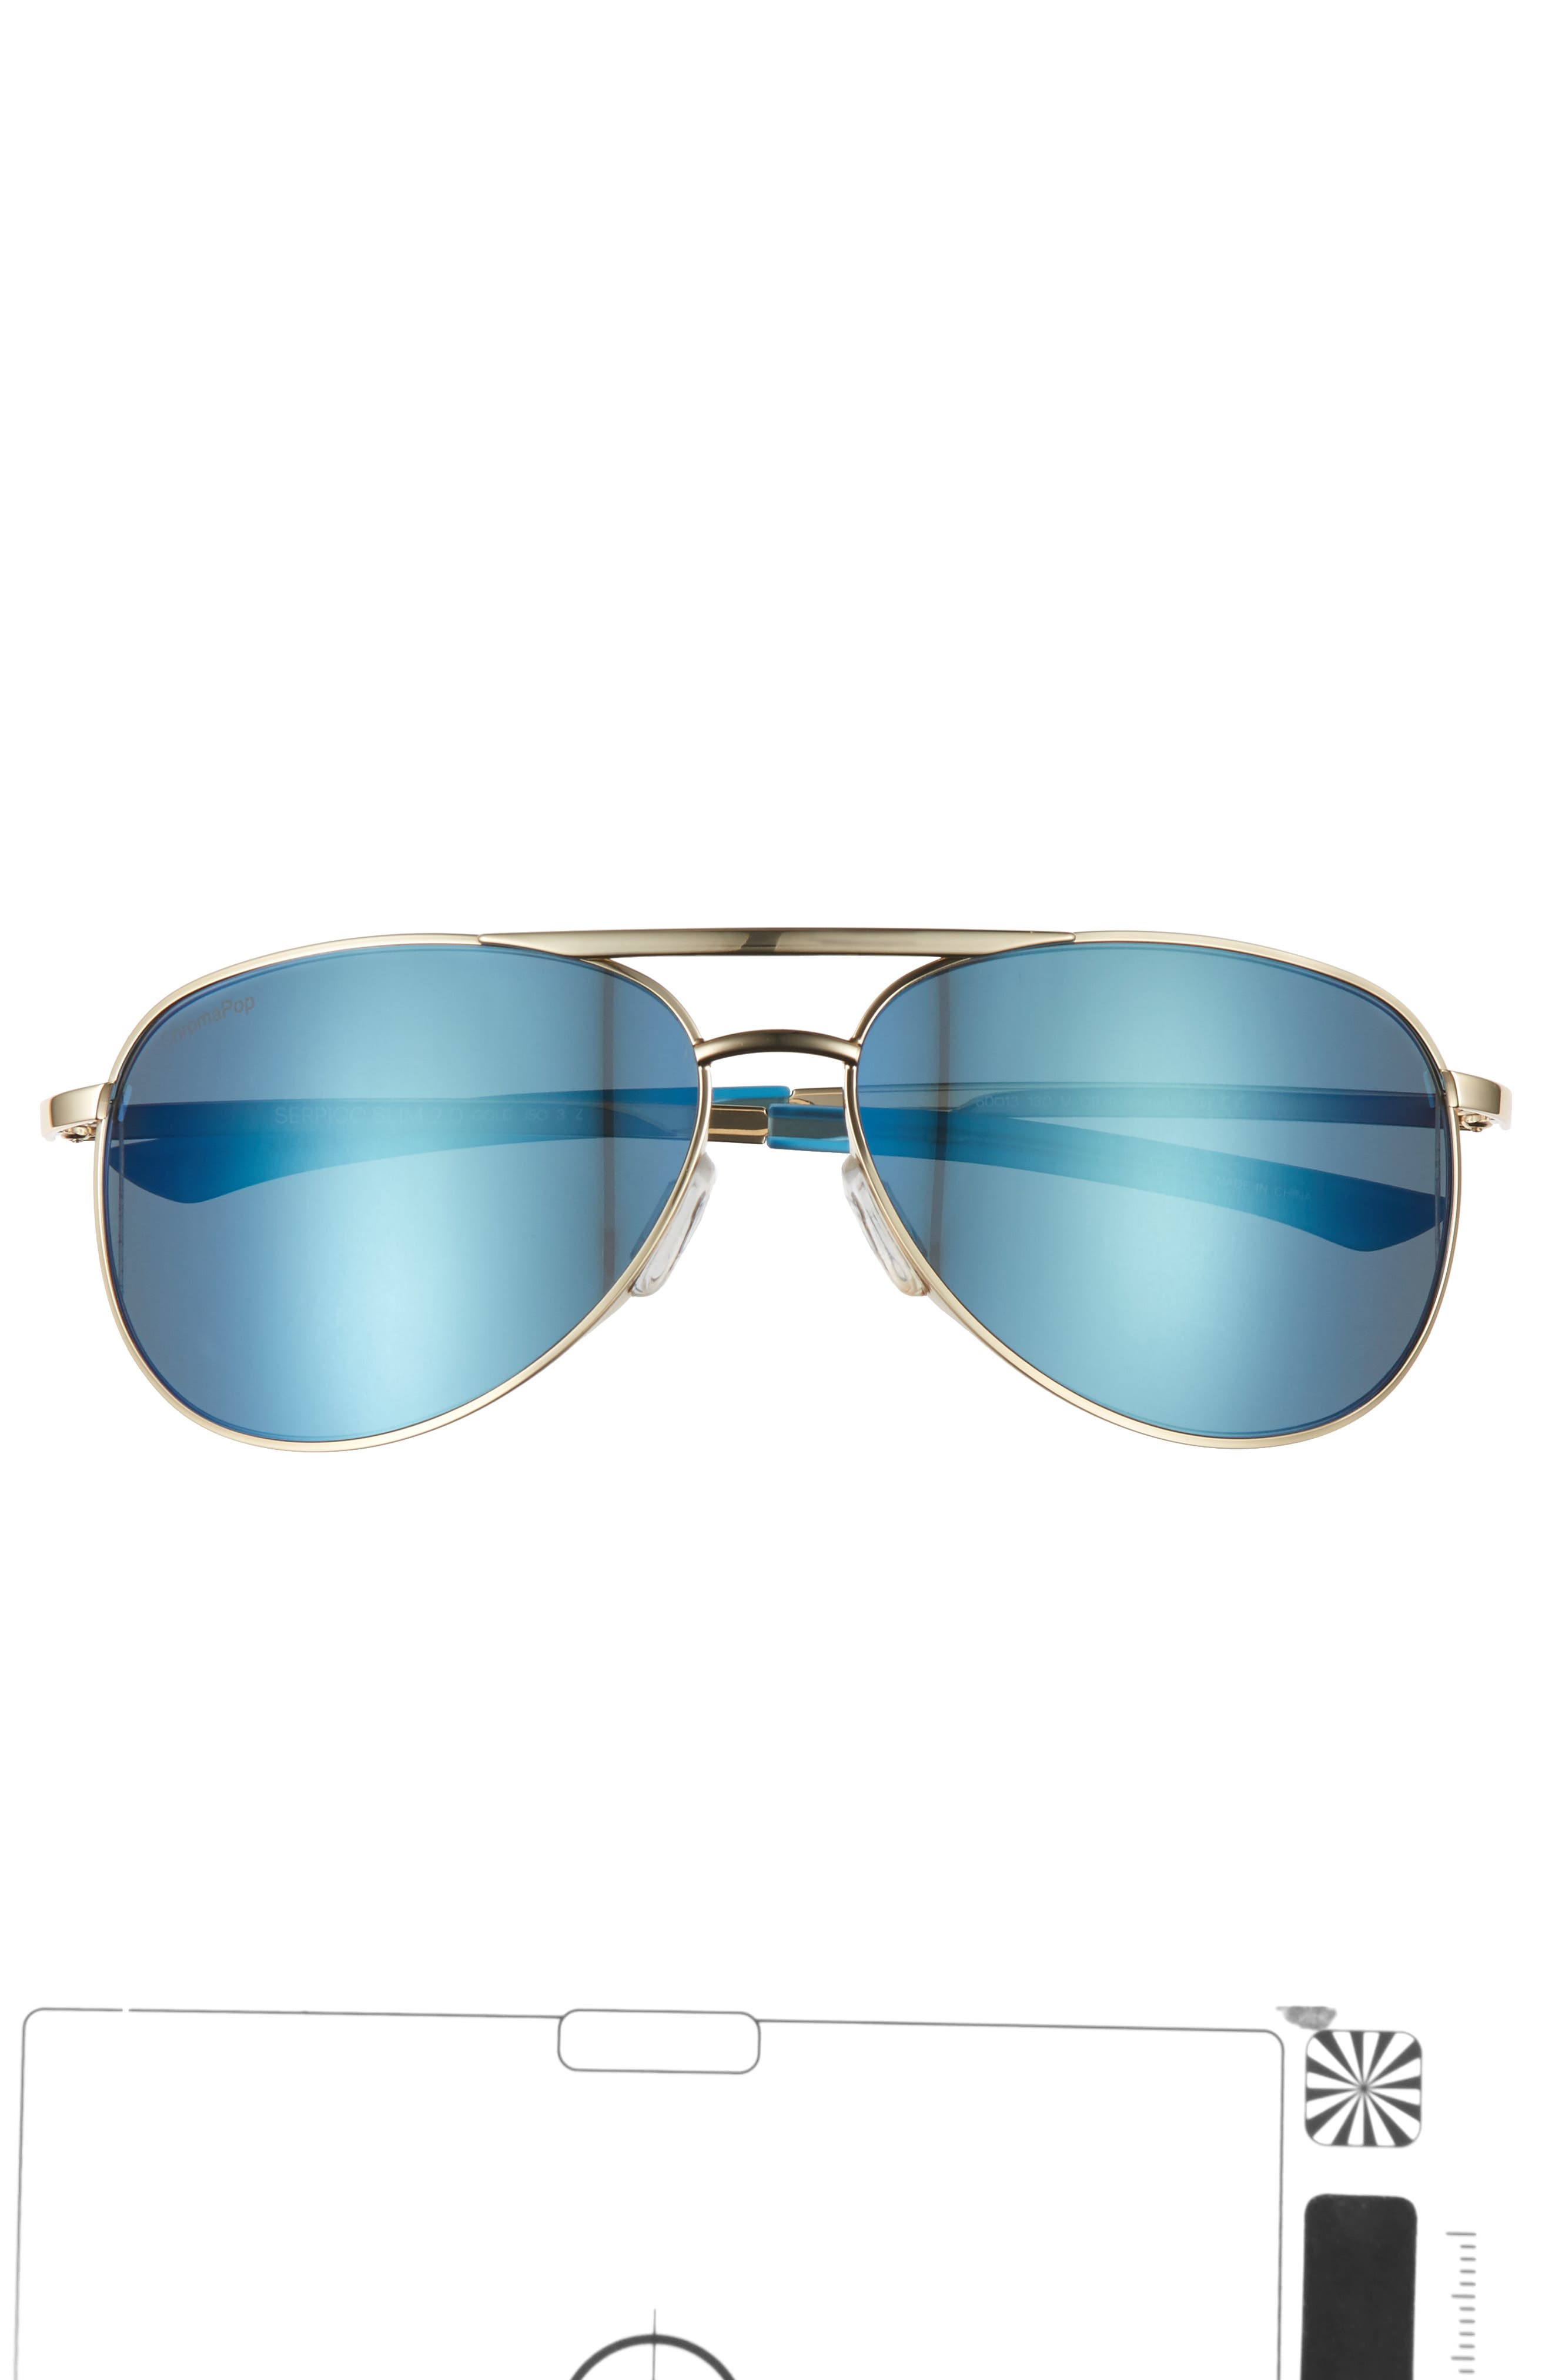 Serpico Slim 2.0 60mm ChromaPop Polarized Aviator Sunglasses,                             Alternate thumbnail 3, color,                             Gold/ Blue Polar